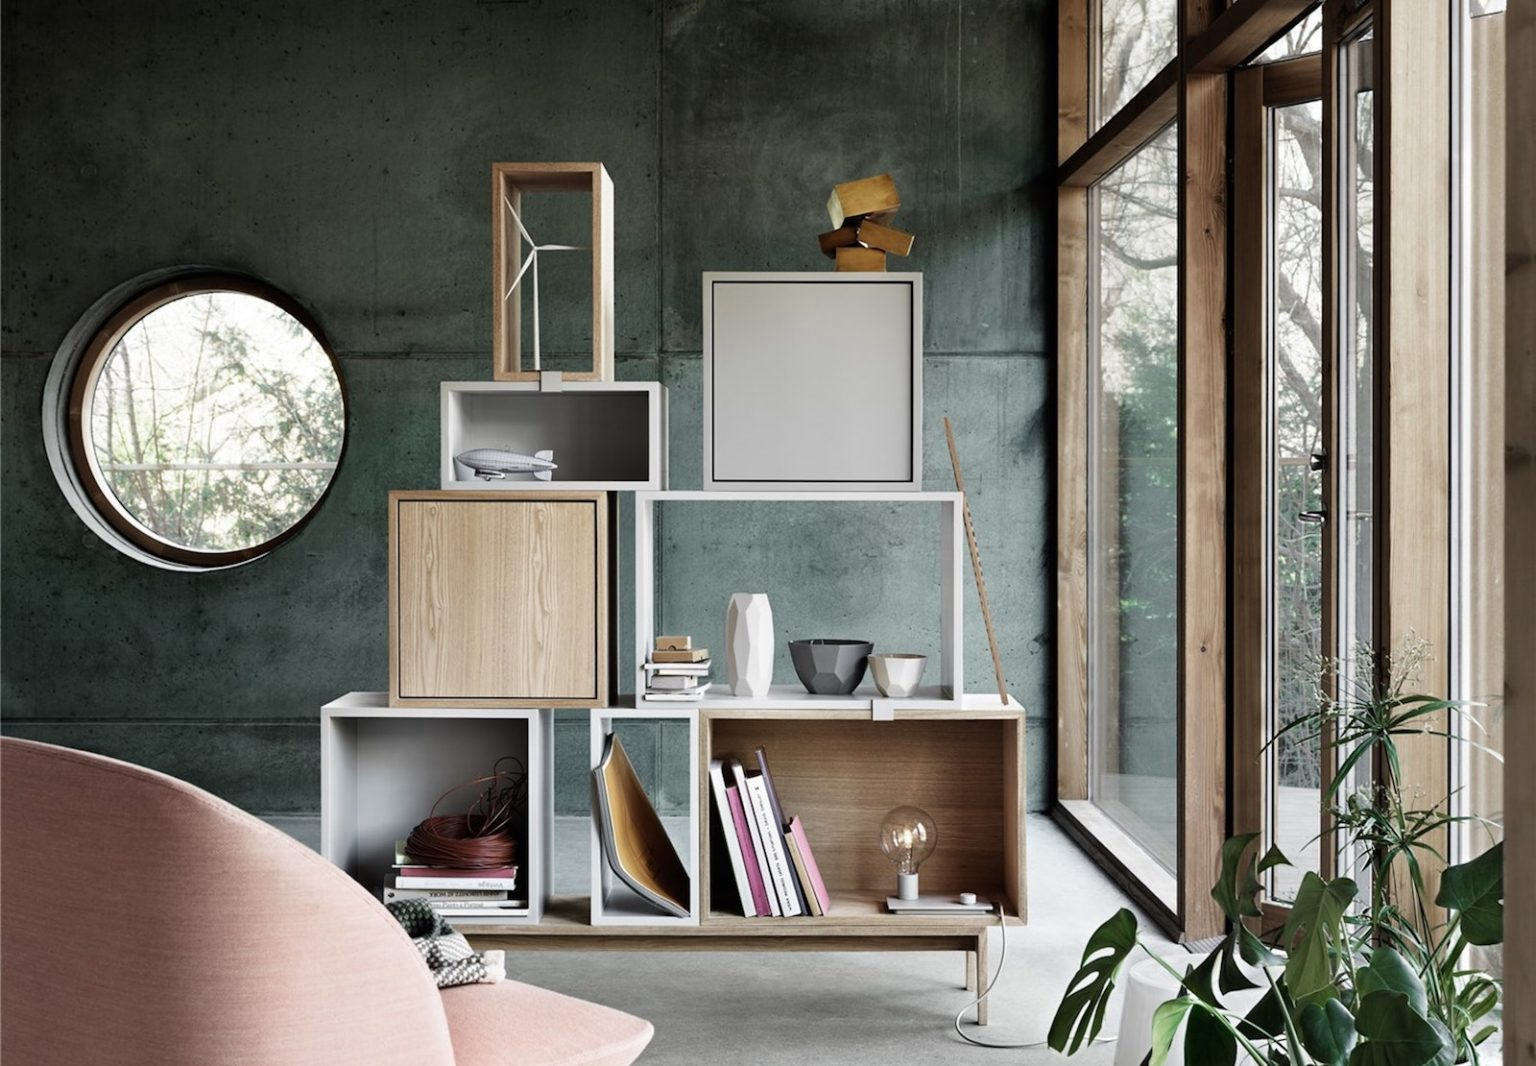 reach within of design for lovely decorating living best projects creative ideas bookshelf room